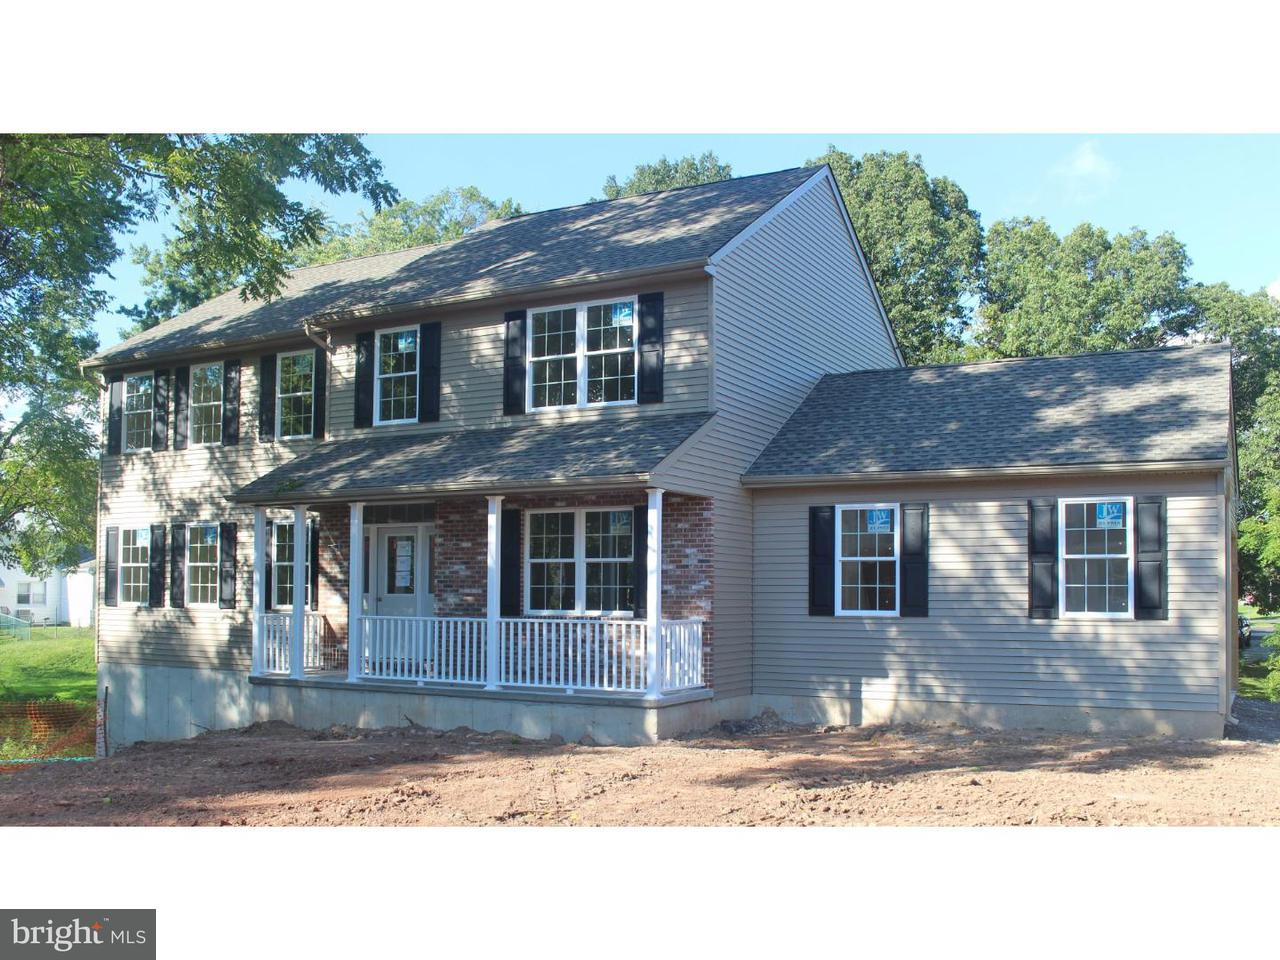 Single Family Home for Sale at 3834 BETZ Road Hatboro, Pennsylvania 19040 United States